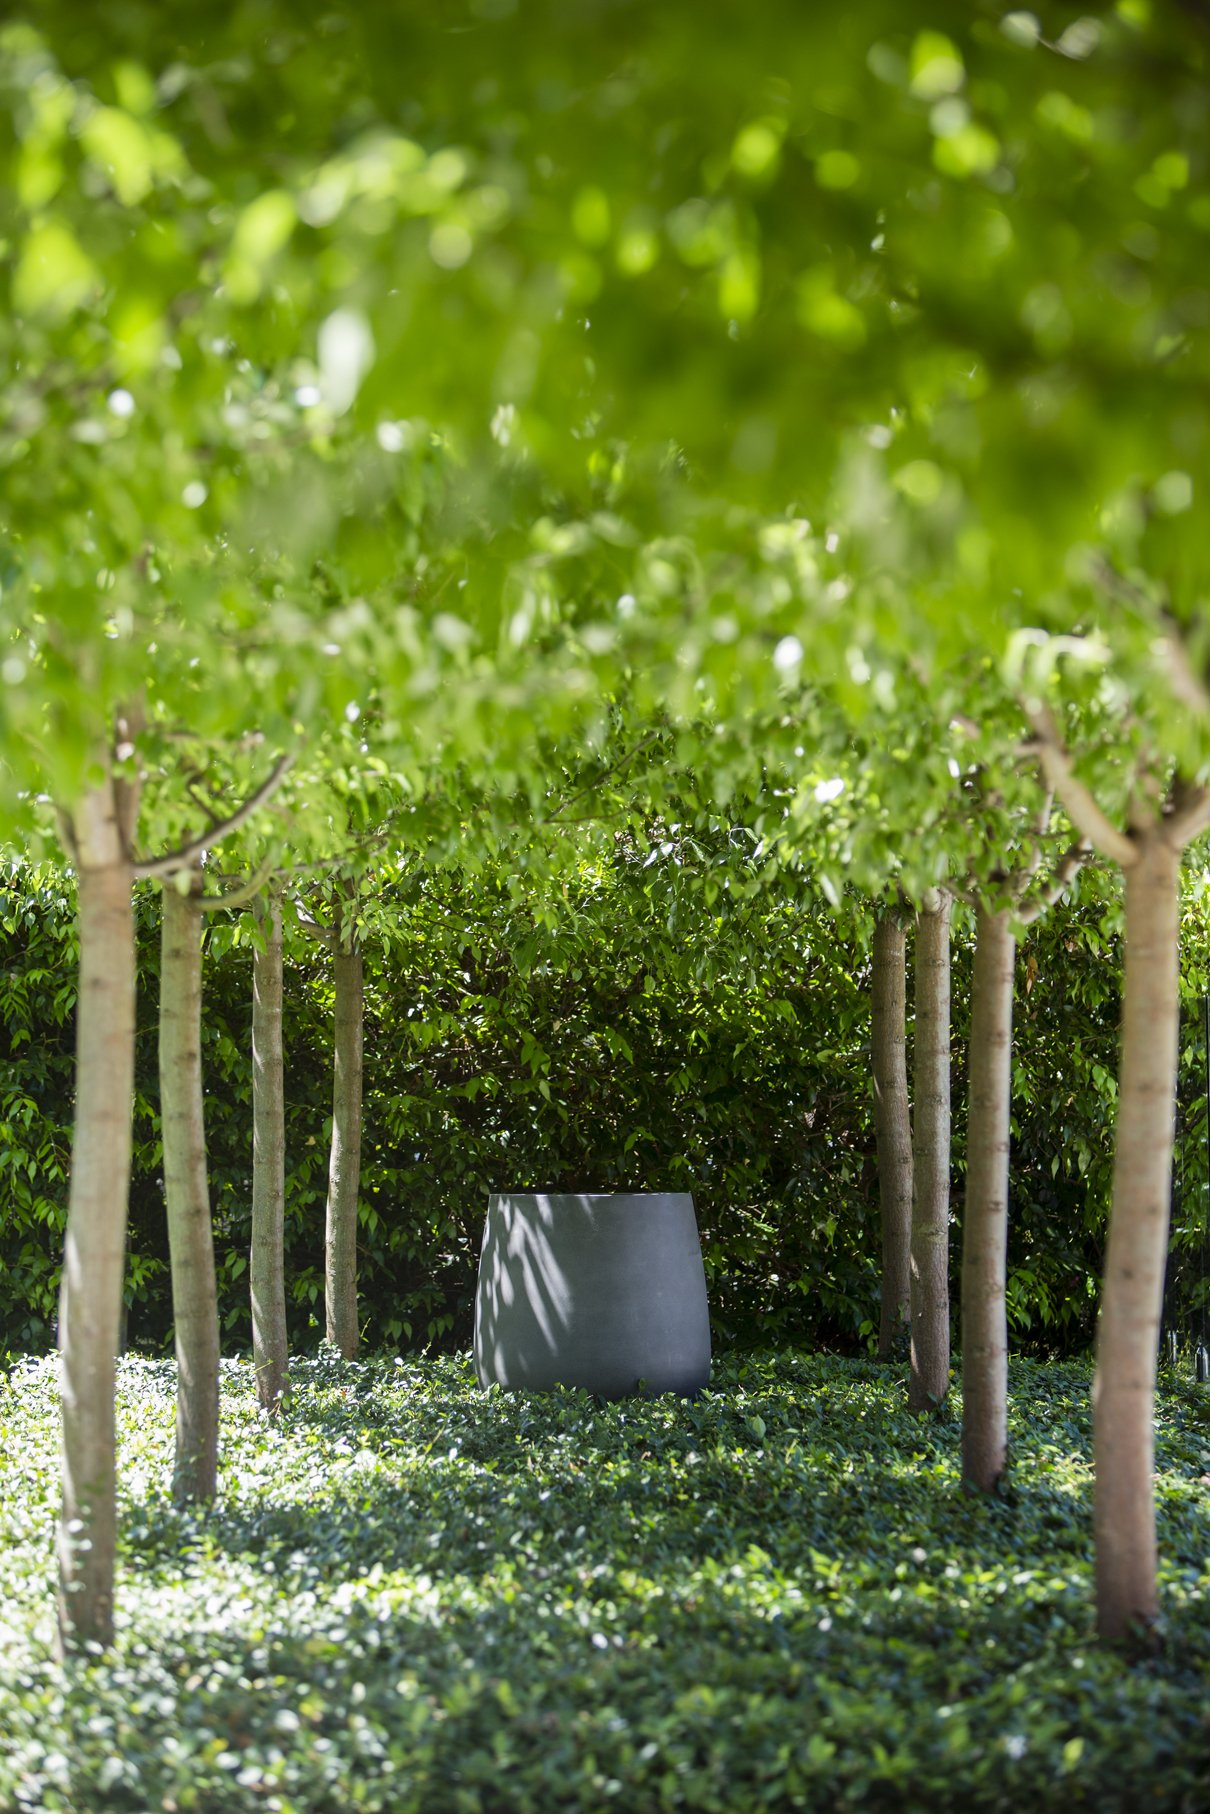 Pleached Pyrus trees with Trachelospermum asiaticum groundcover with a feature urn